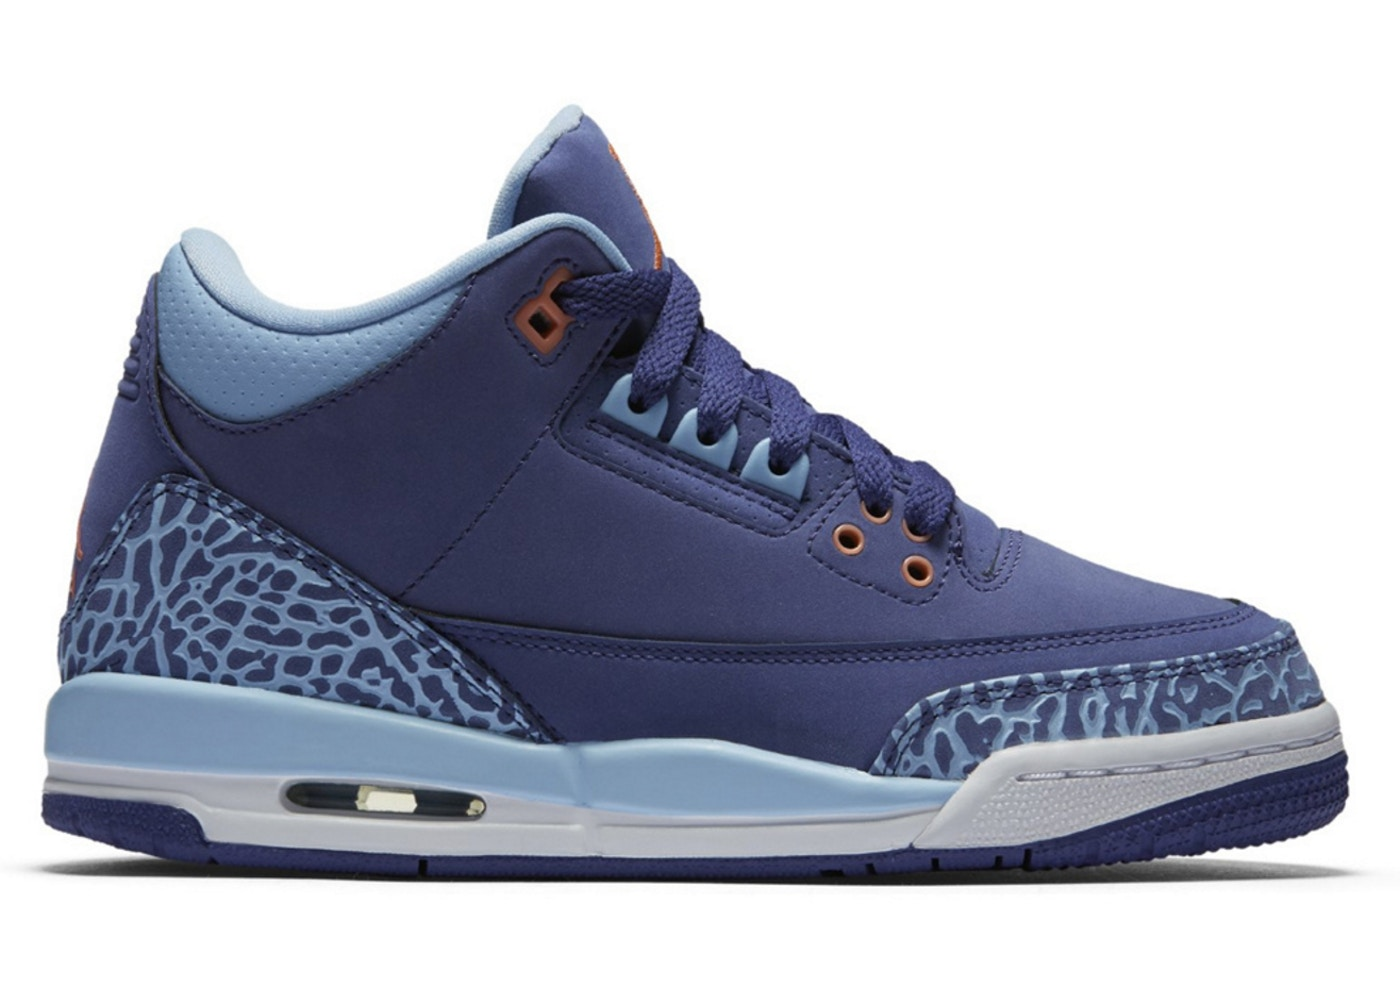 new arrival 90a4c fad7e Jordan 3 Retro Purple Dust (GS) - 441140-506